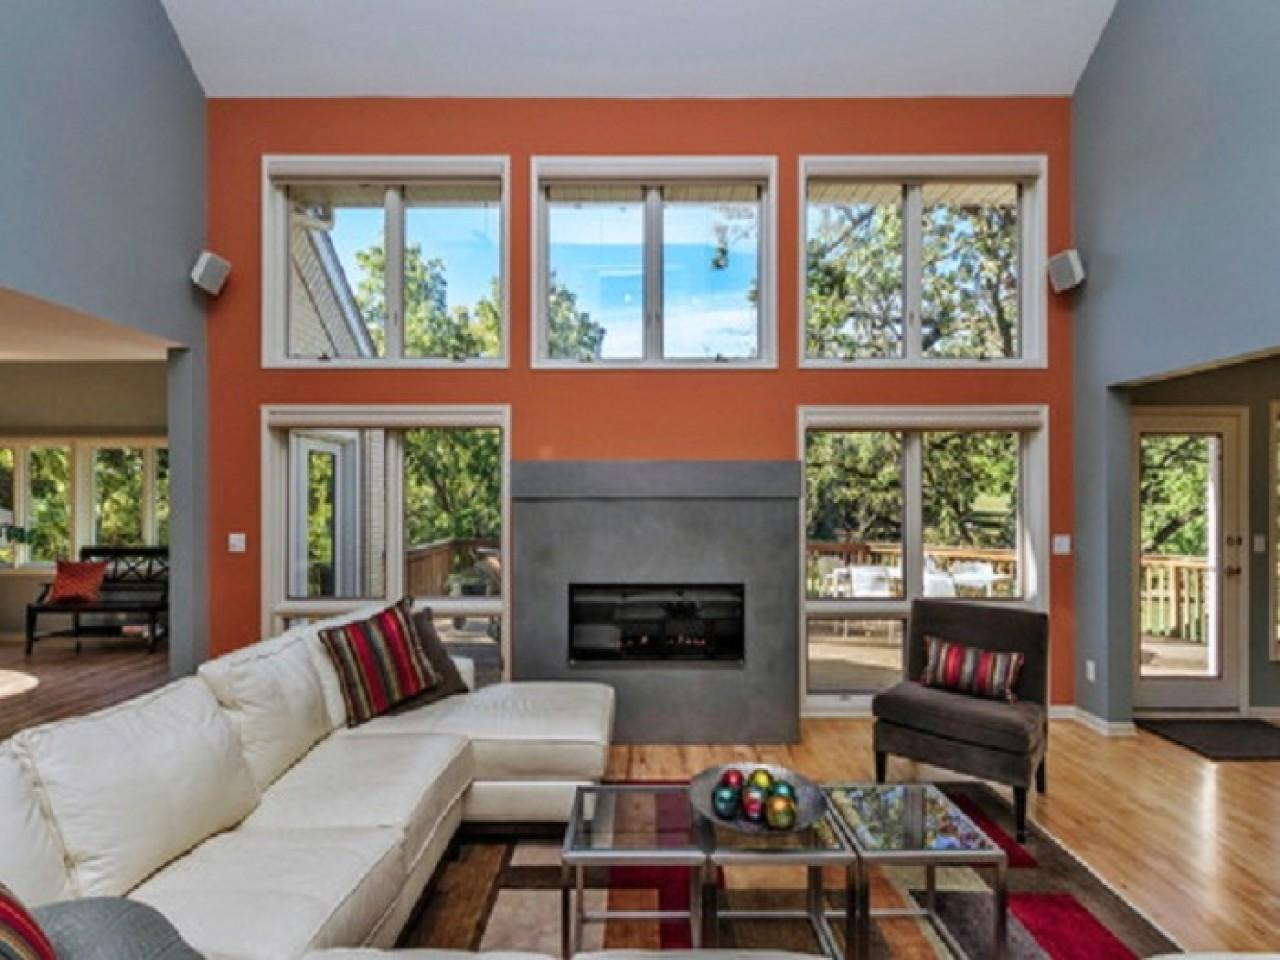 Accent Fireplace Living Room Orange Wall